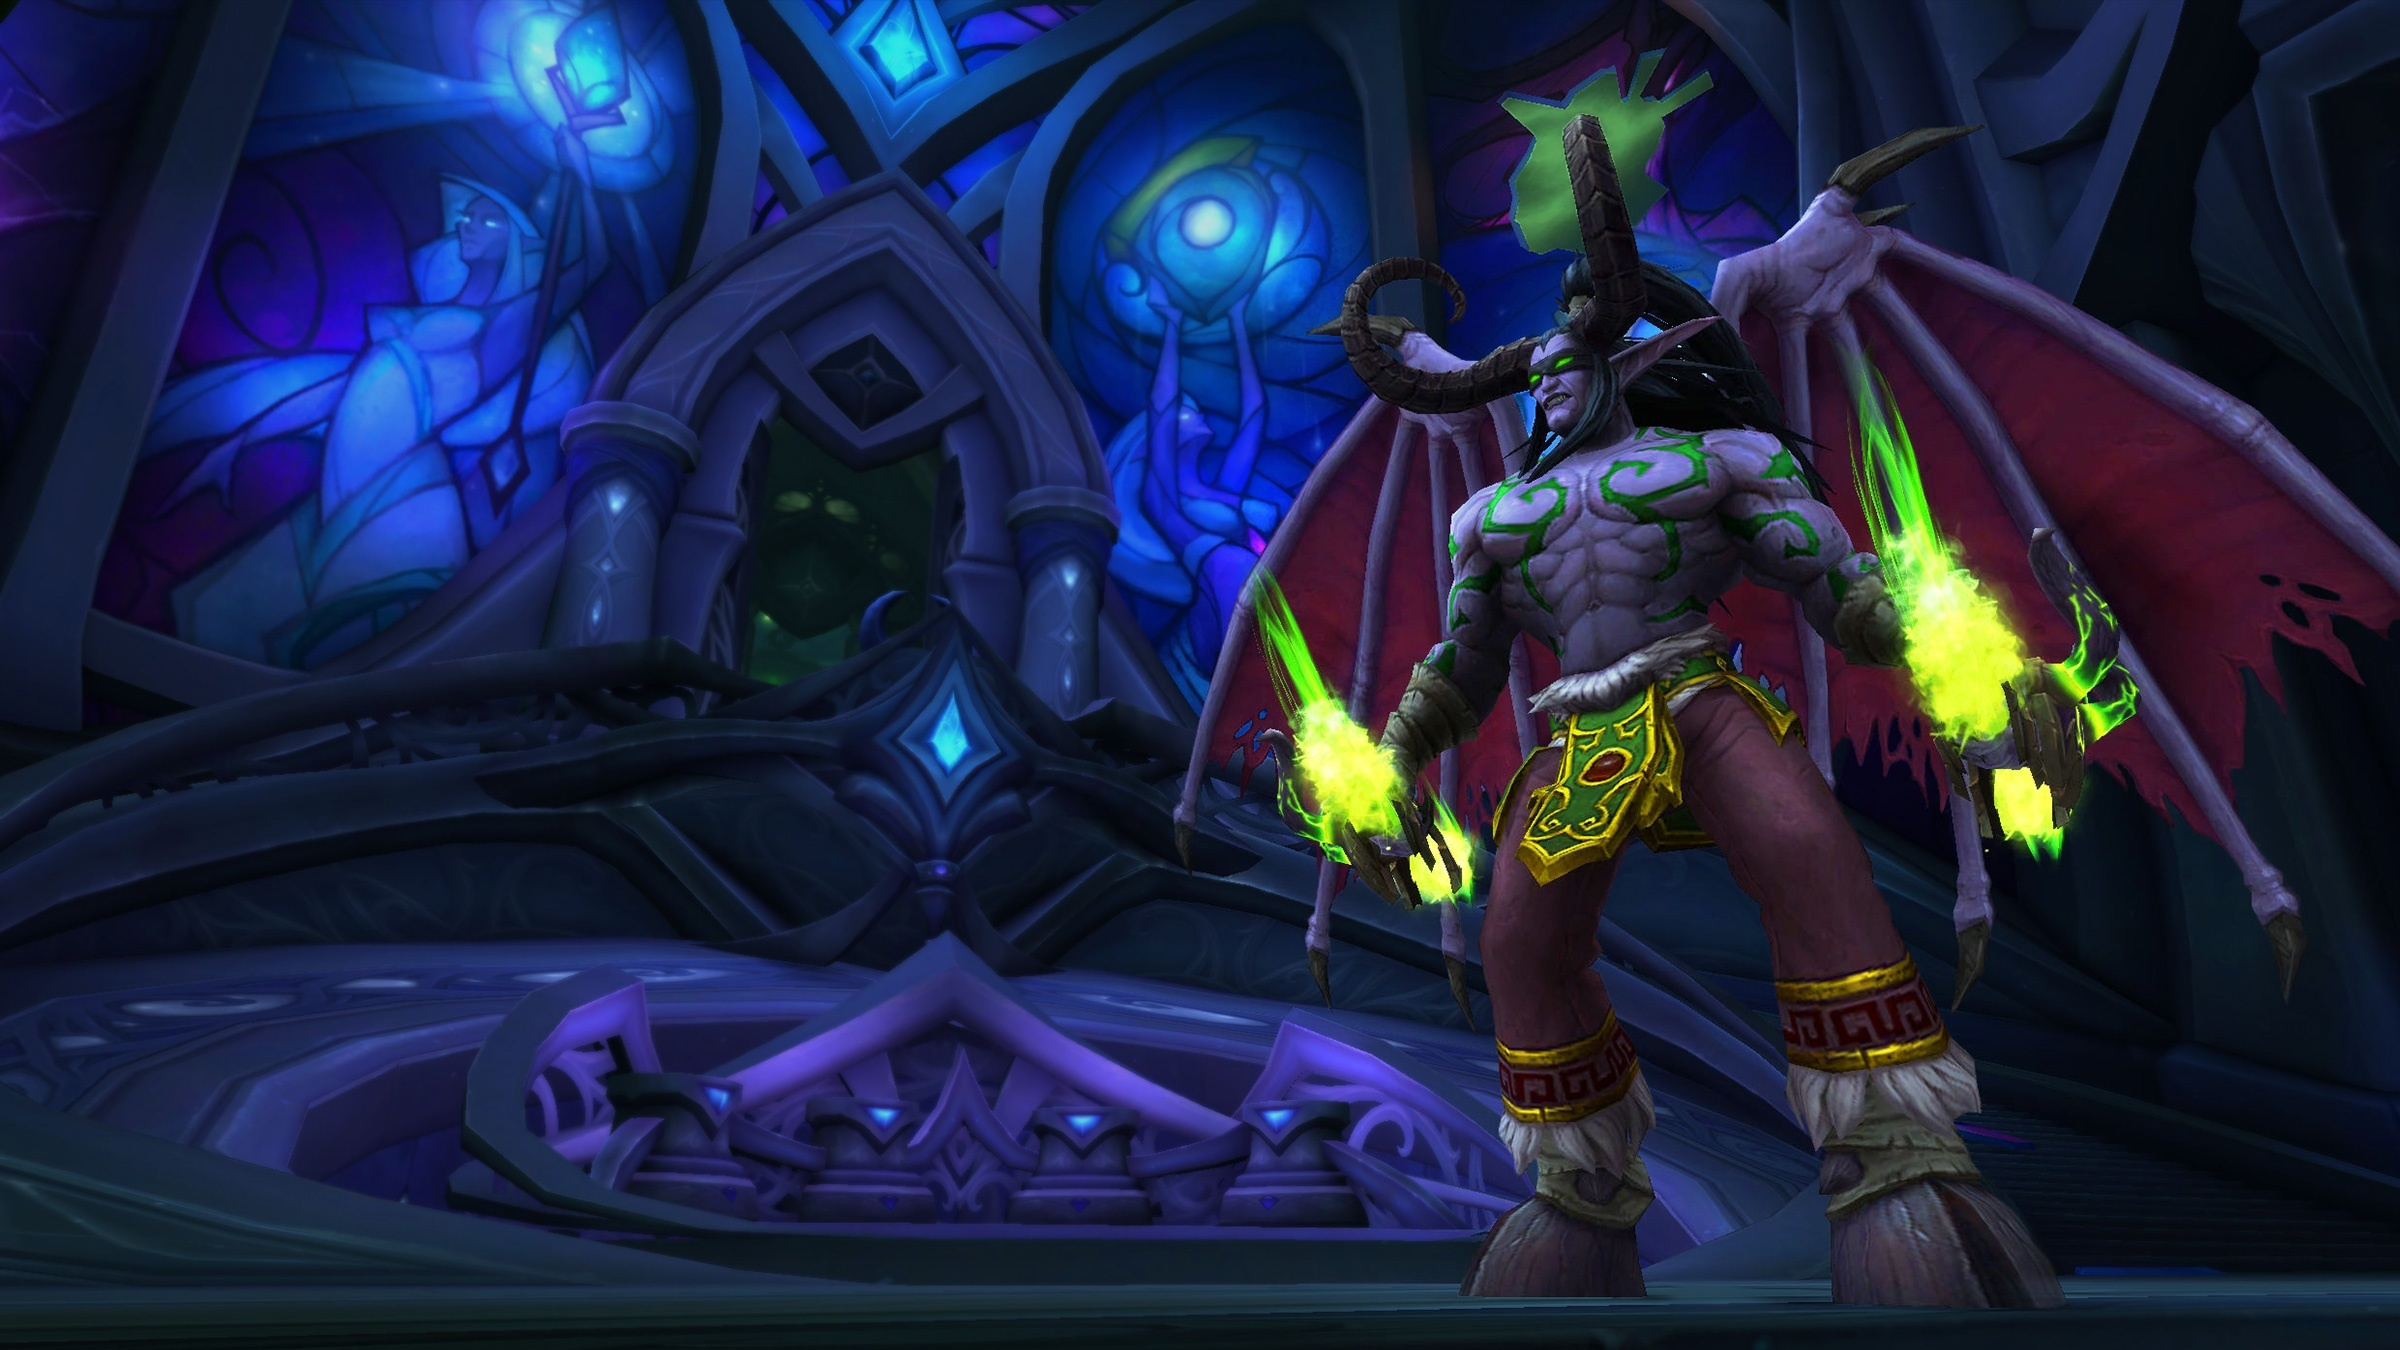 world of warcraft official 7 2 5 patch notes wowhead news. Black Bedroom Furniture Sets. Home Design Ideas